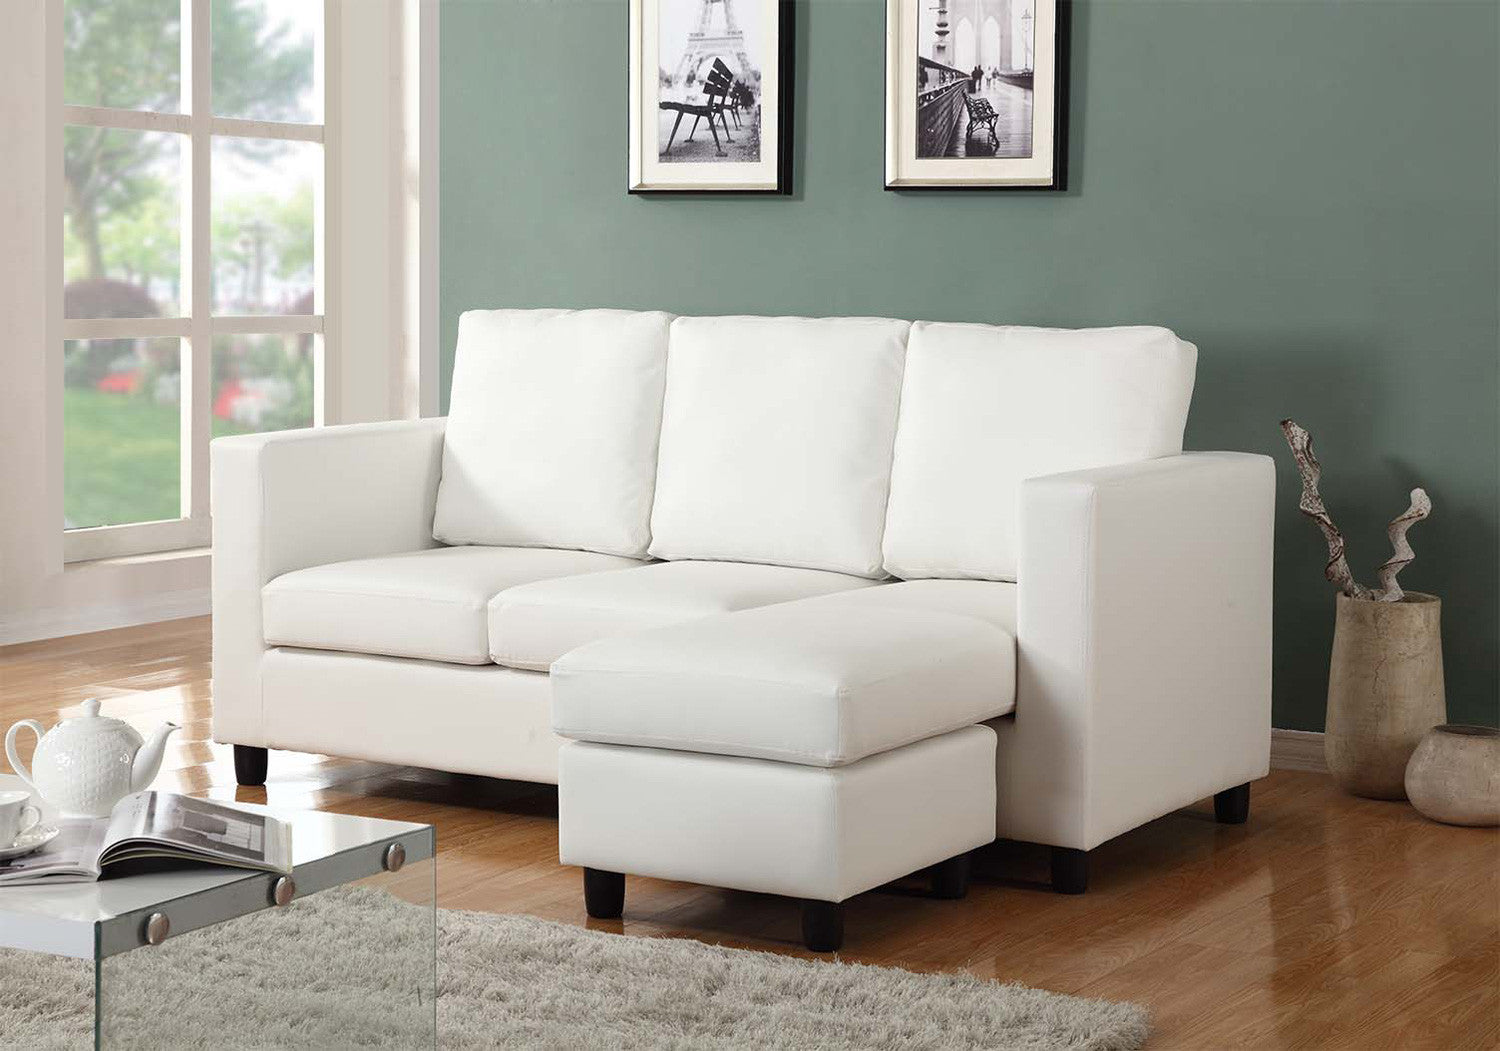 room precedent sofa sectional furniture cupboard parlor caryssa palette in products